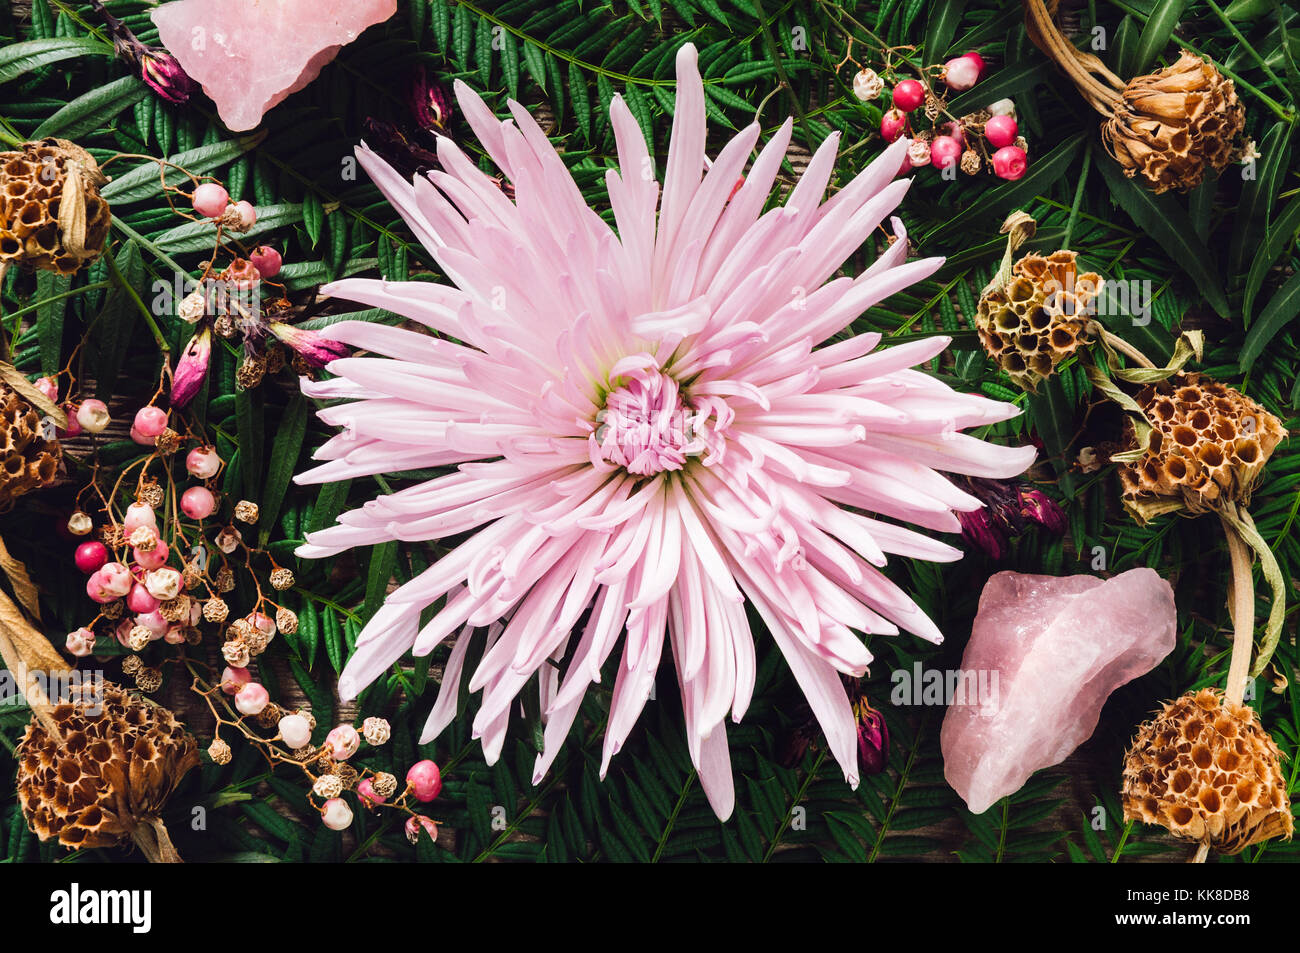 Fuji Spider Mum Flower with Rose Quartz Crystal and Schinus molle Fruits. - Stock Image